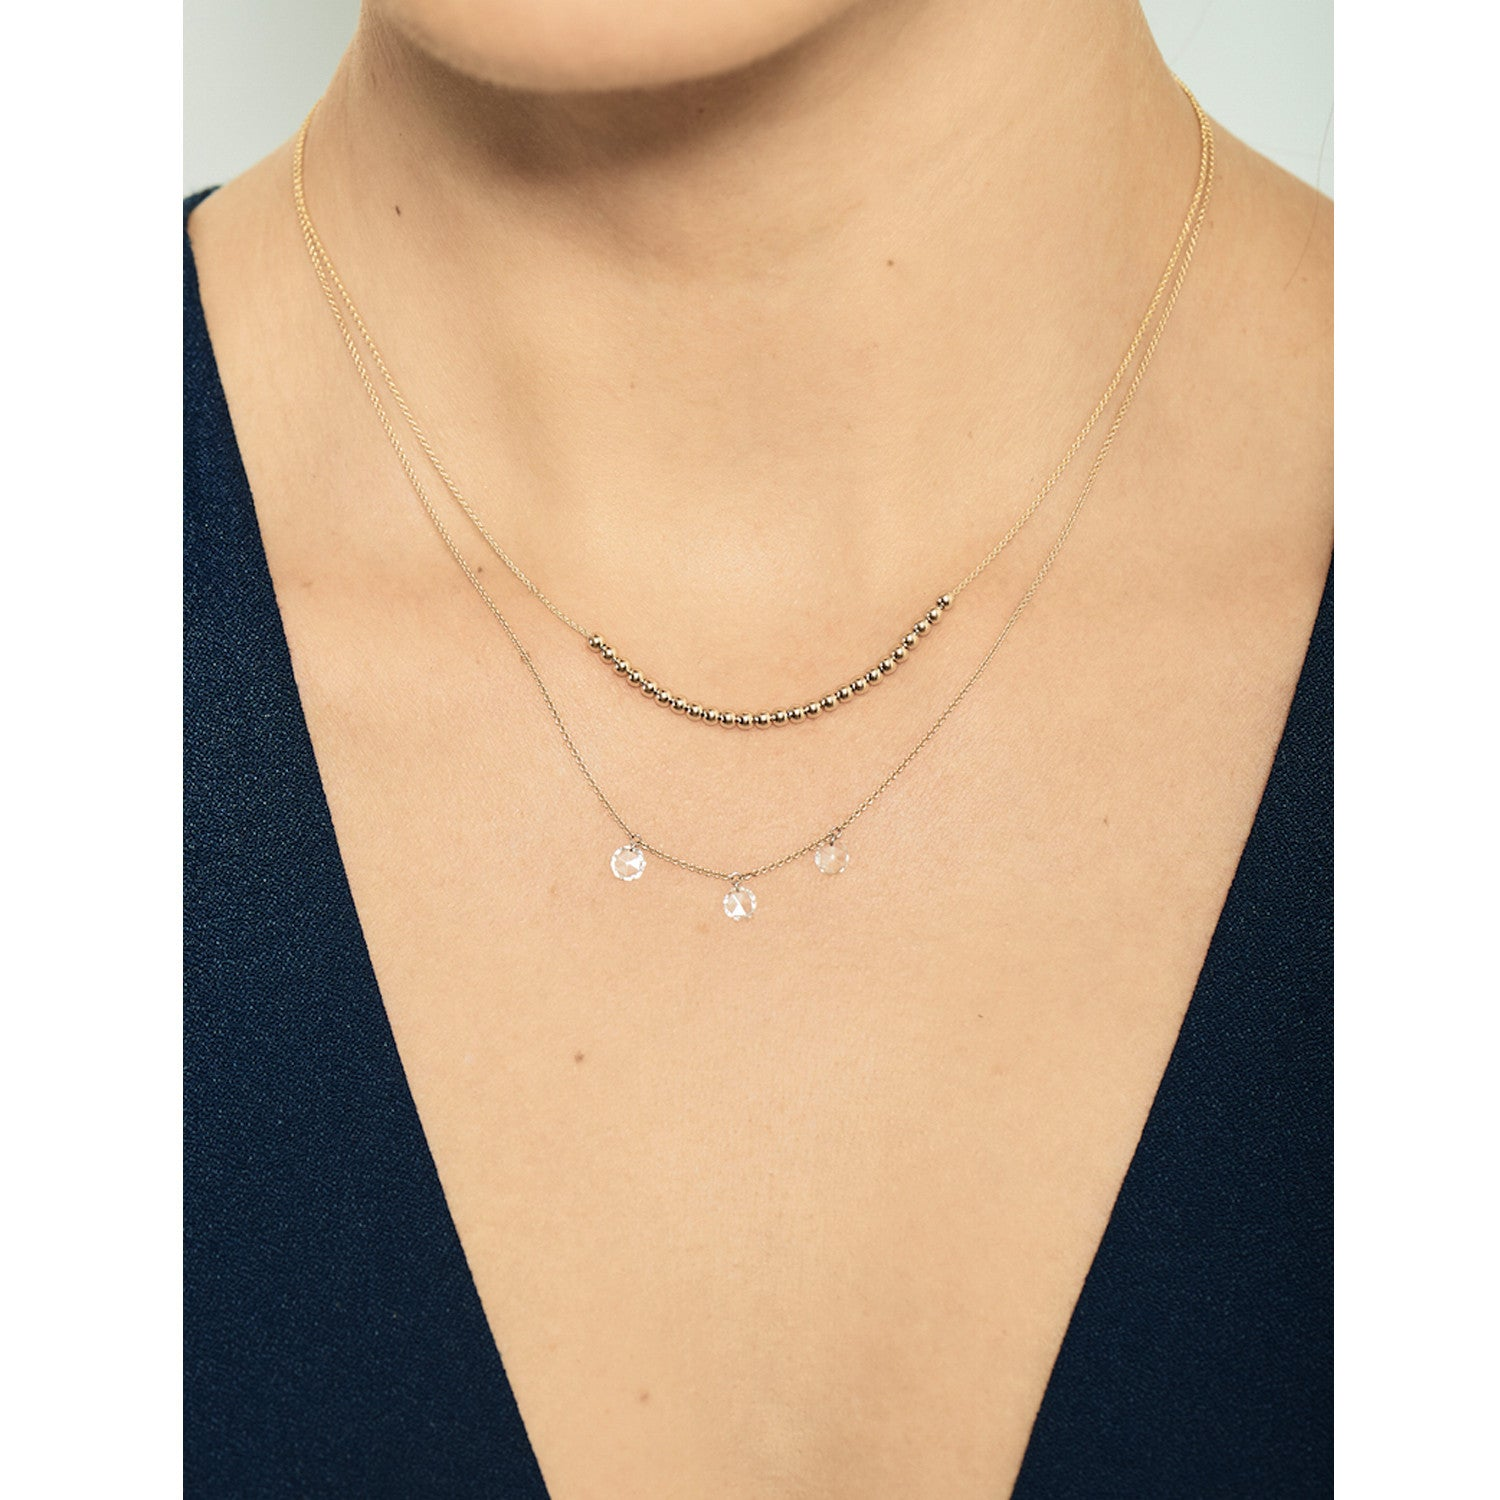 Selin Kent 14K Maya Necklace - On Model